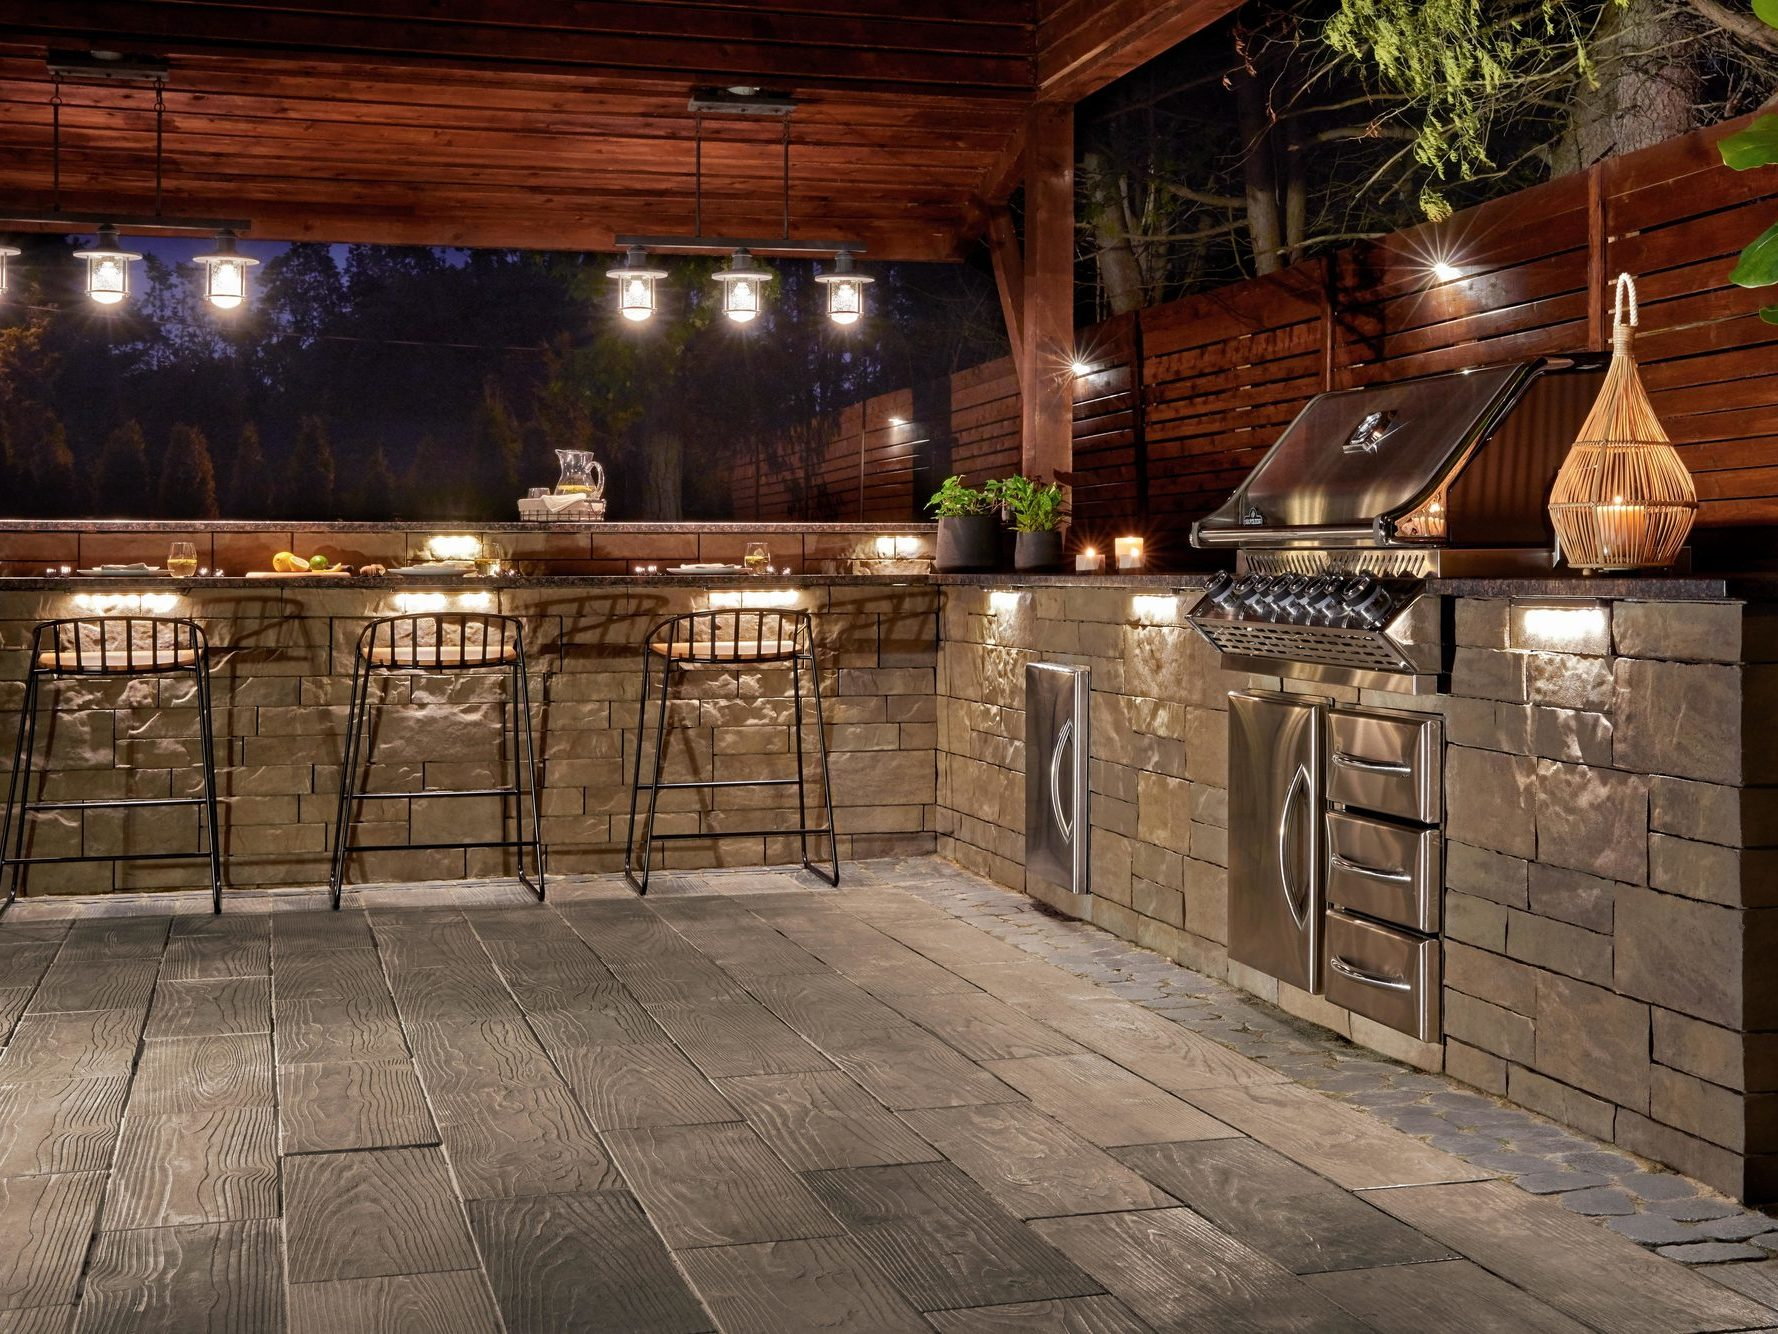 Borealis patio slabs in Hazelnut Brandy